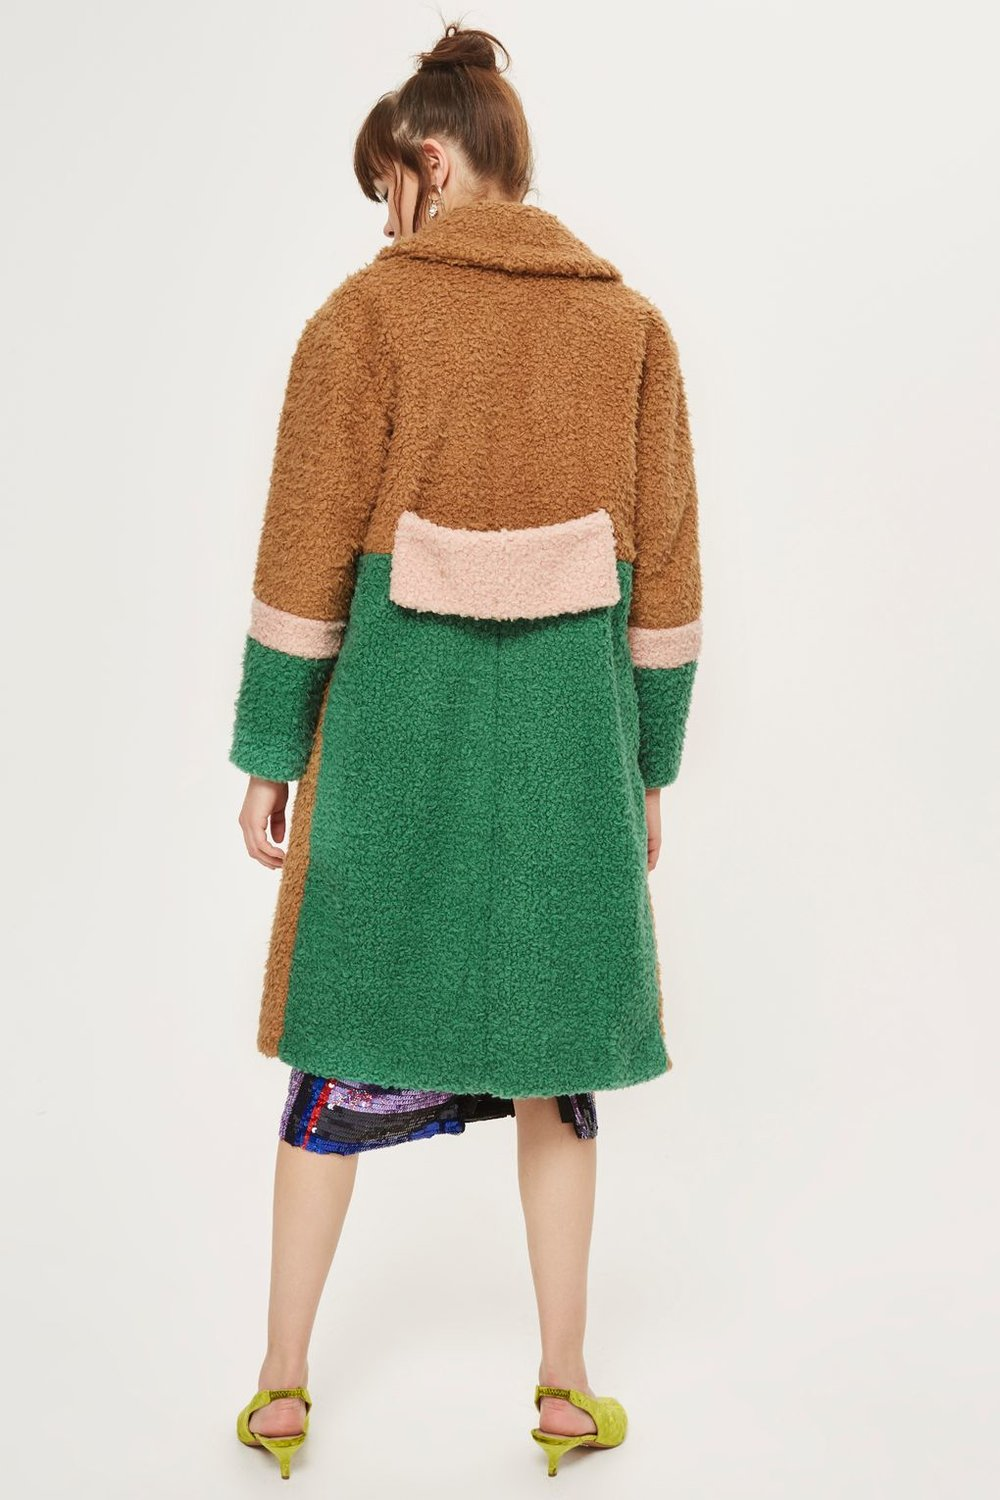 3. Topshop Color Block